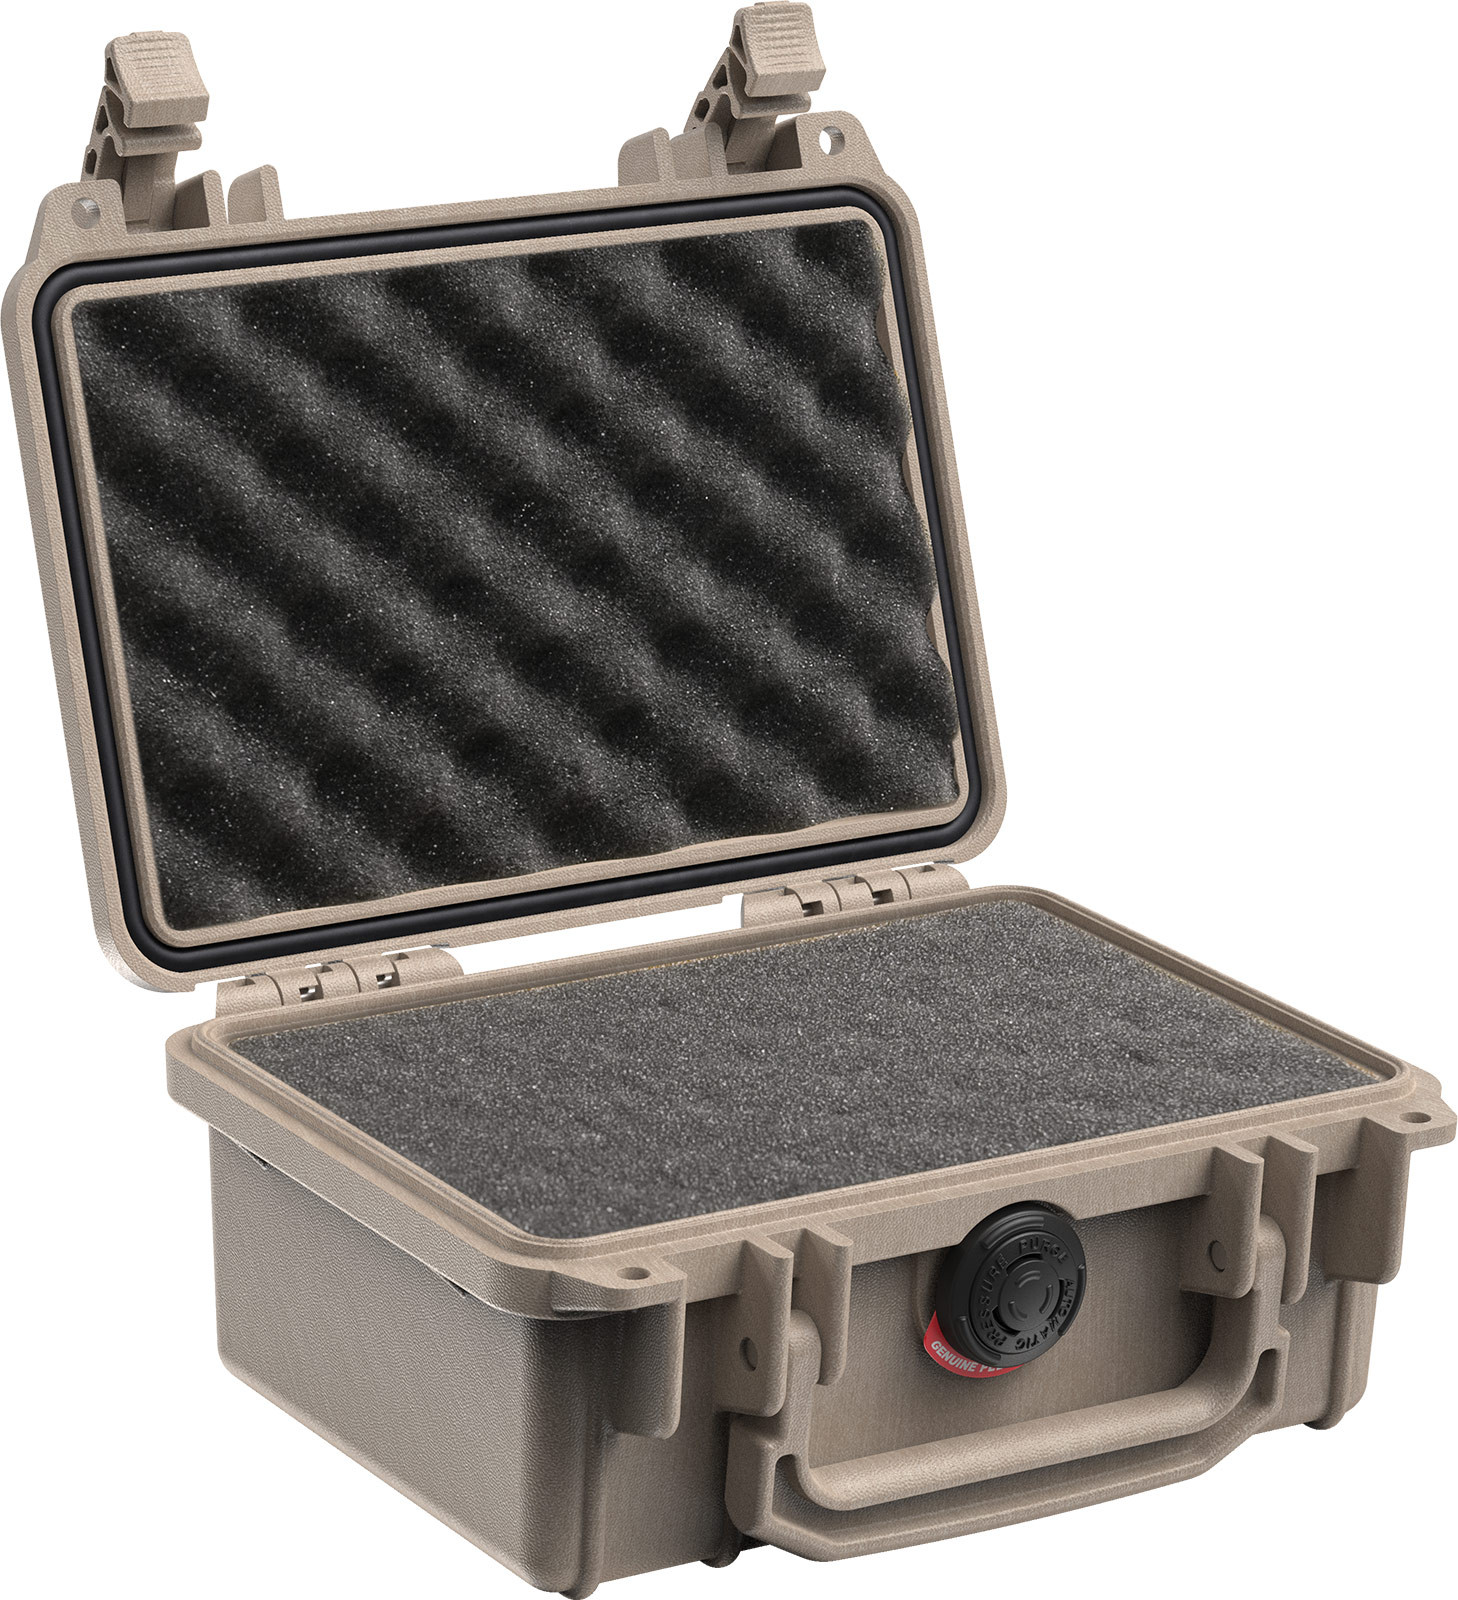 pelican peli products 1150 watertight protective hard case